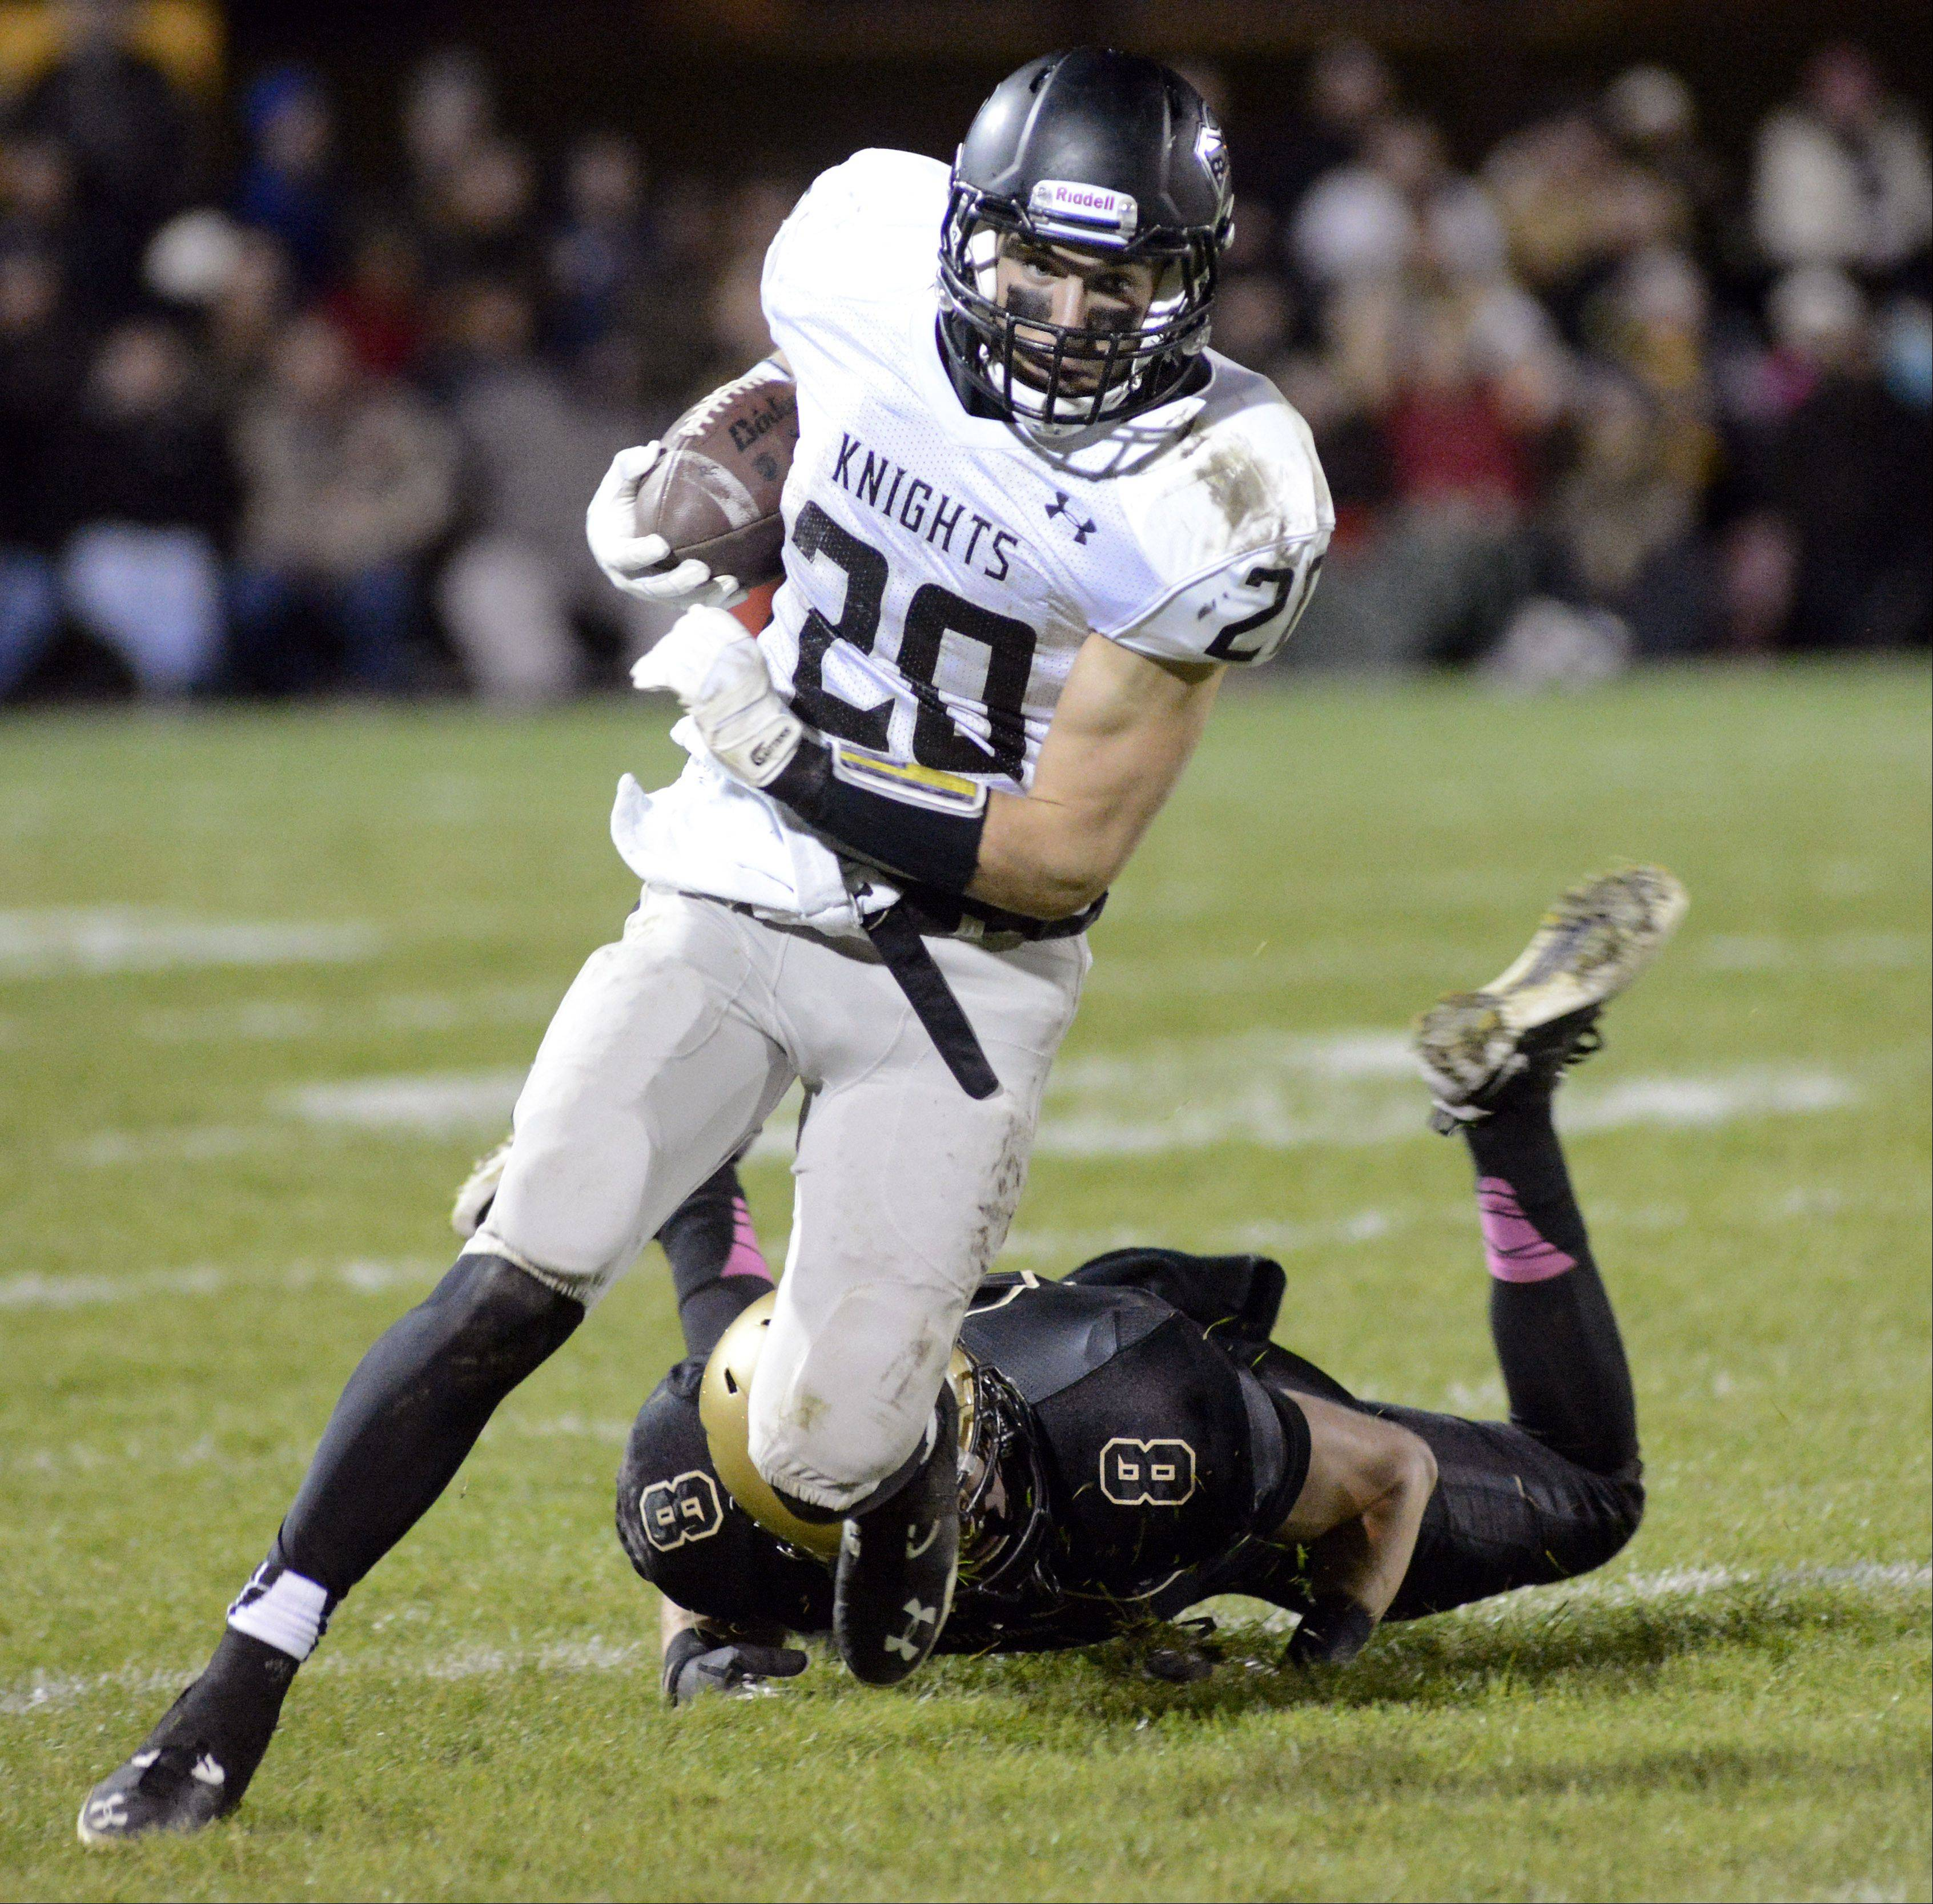 Kaneland's Dylan Nauert shakes off Sycamore's Ben Niemann in the second quarter.